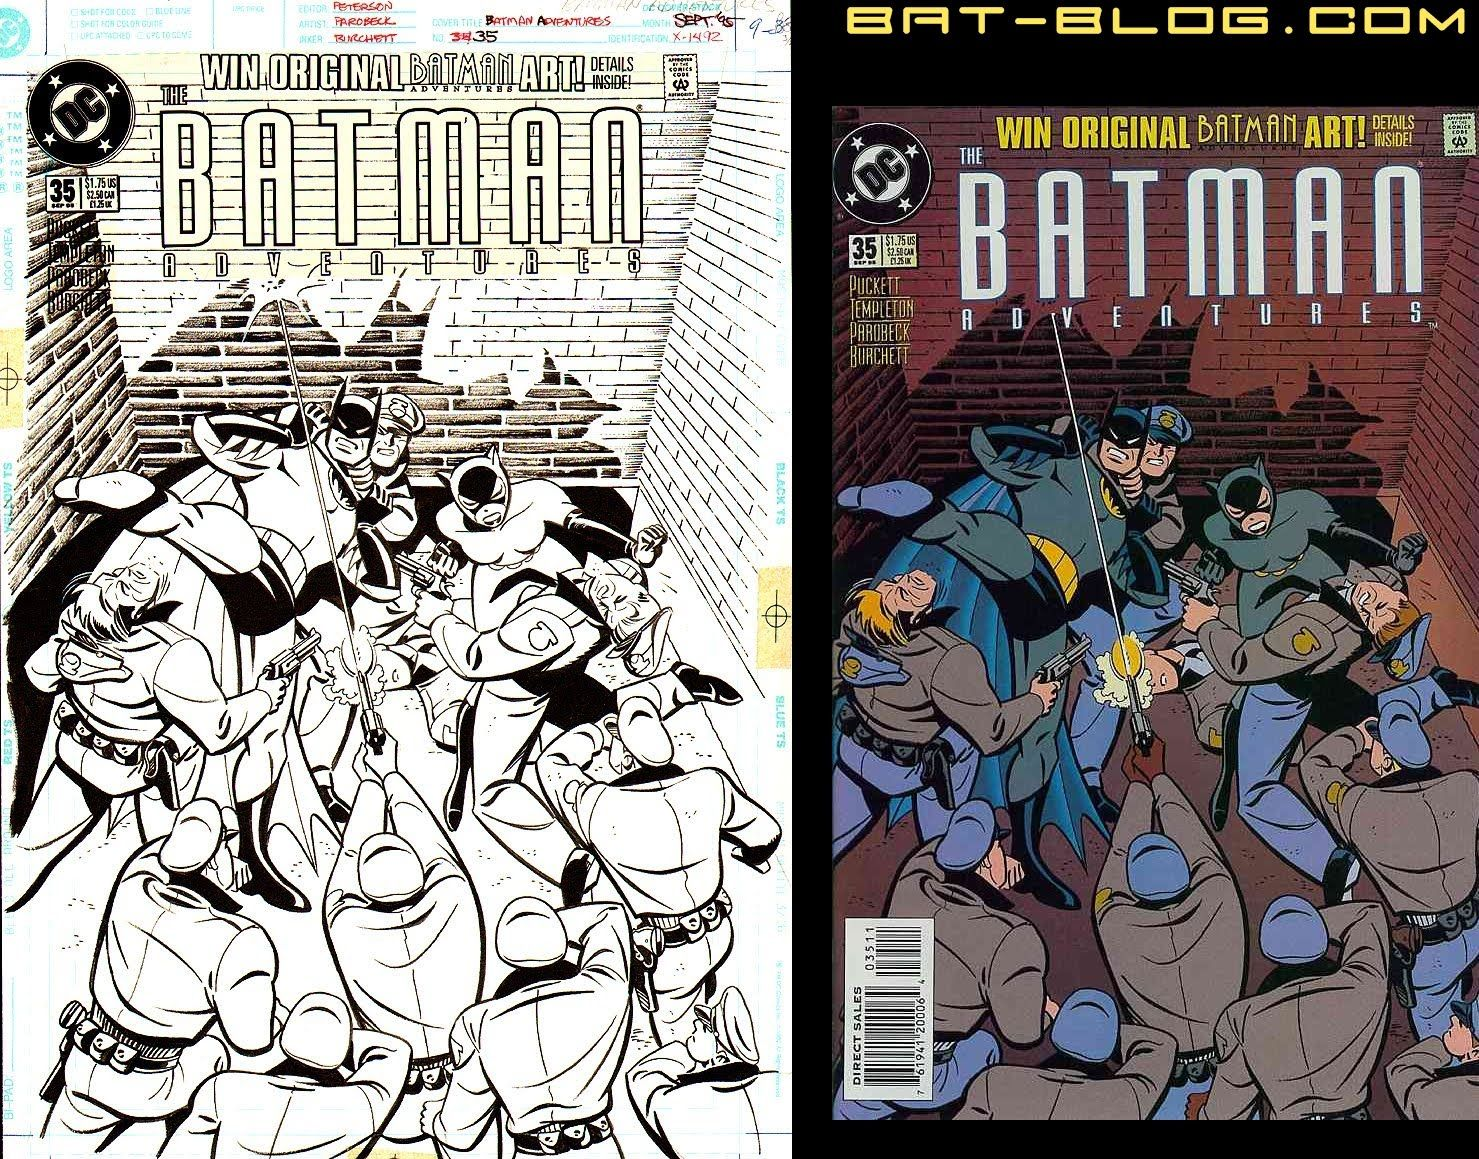 MIKE PAROBECK BAT - BLOG : BATMAN TOYS and COLLECTIBLES: THE BATMAN ADVENTURES - Original Comic Book Cover Artwork